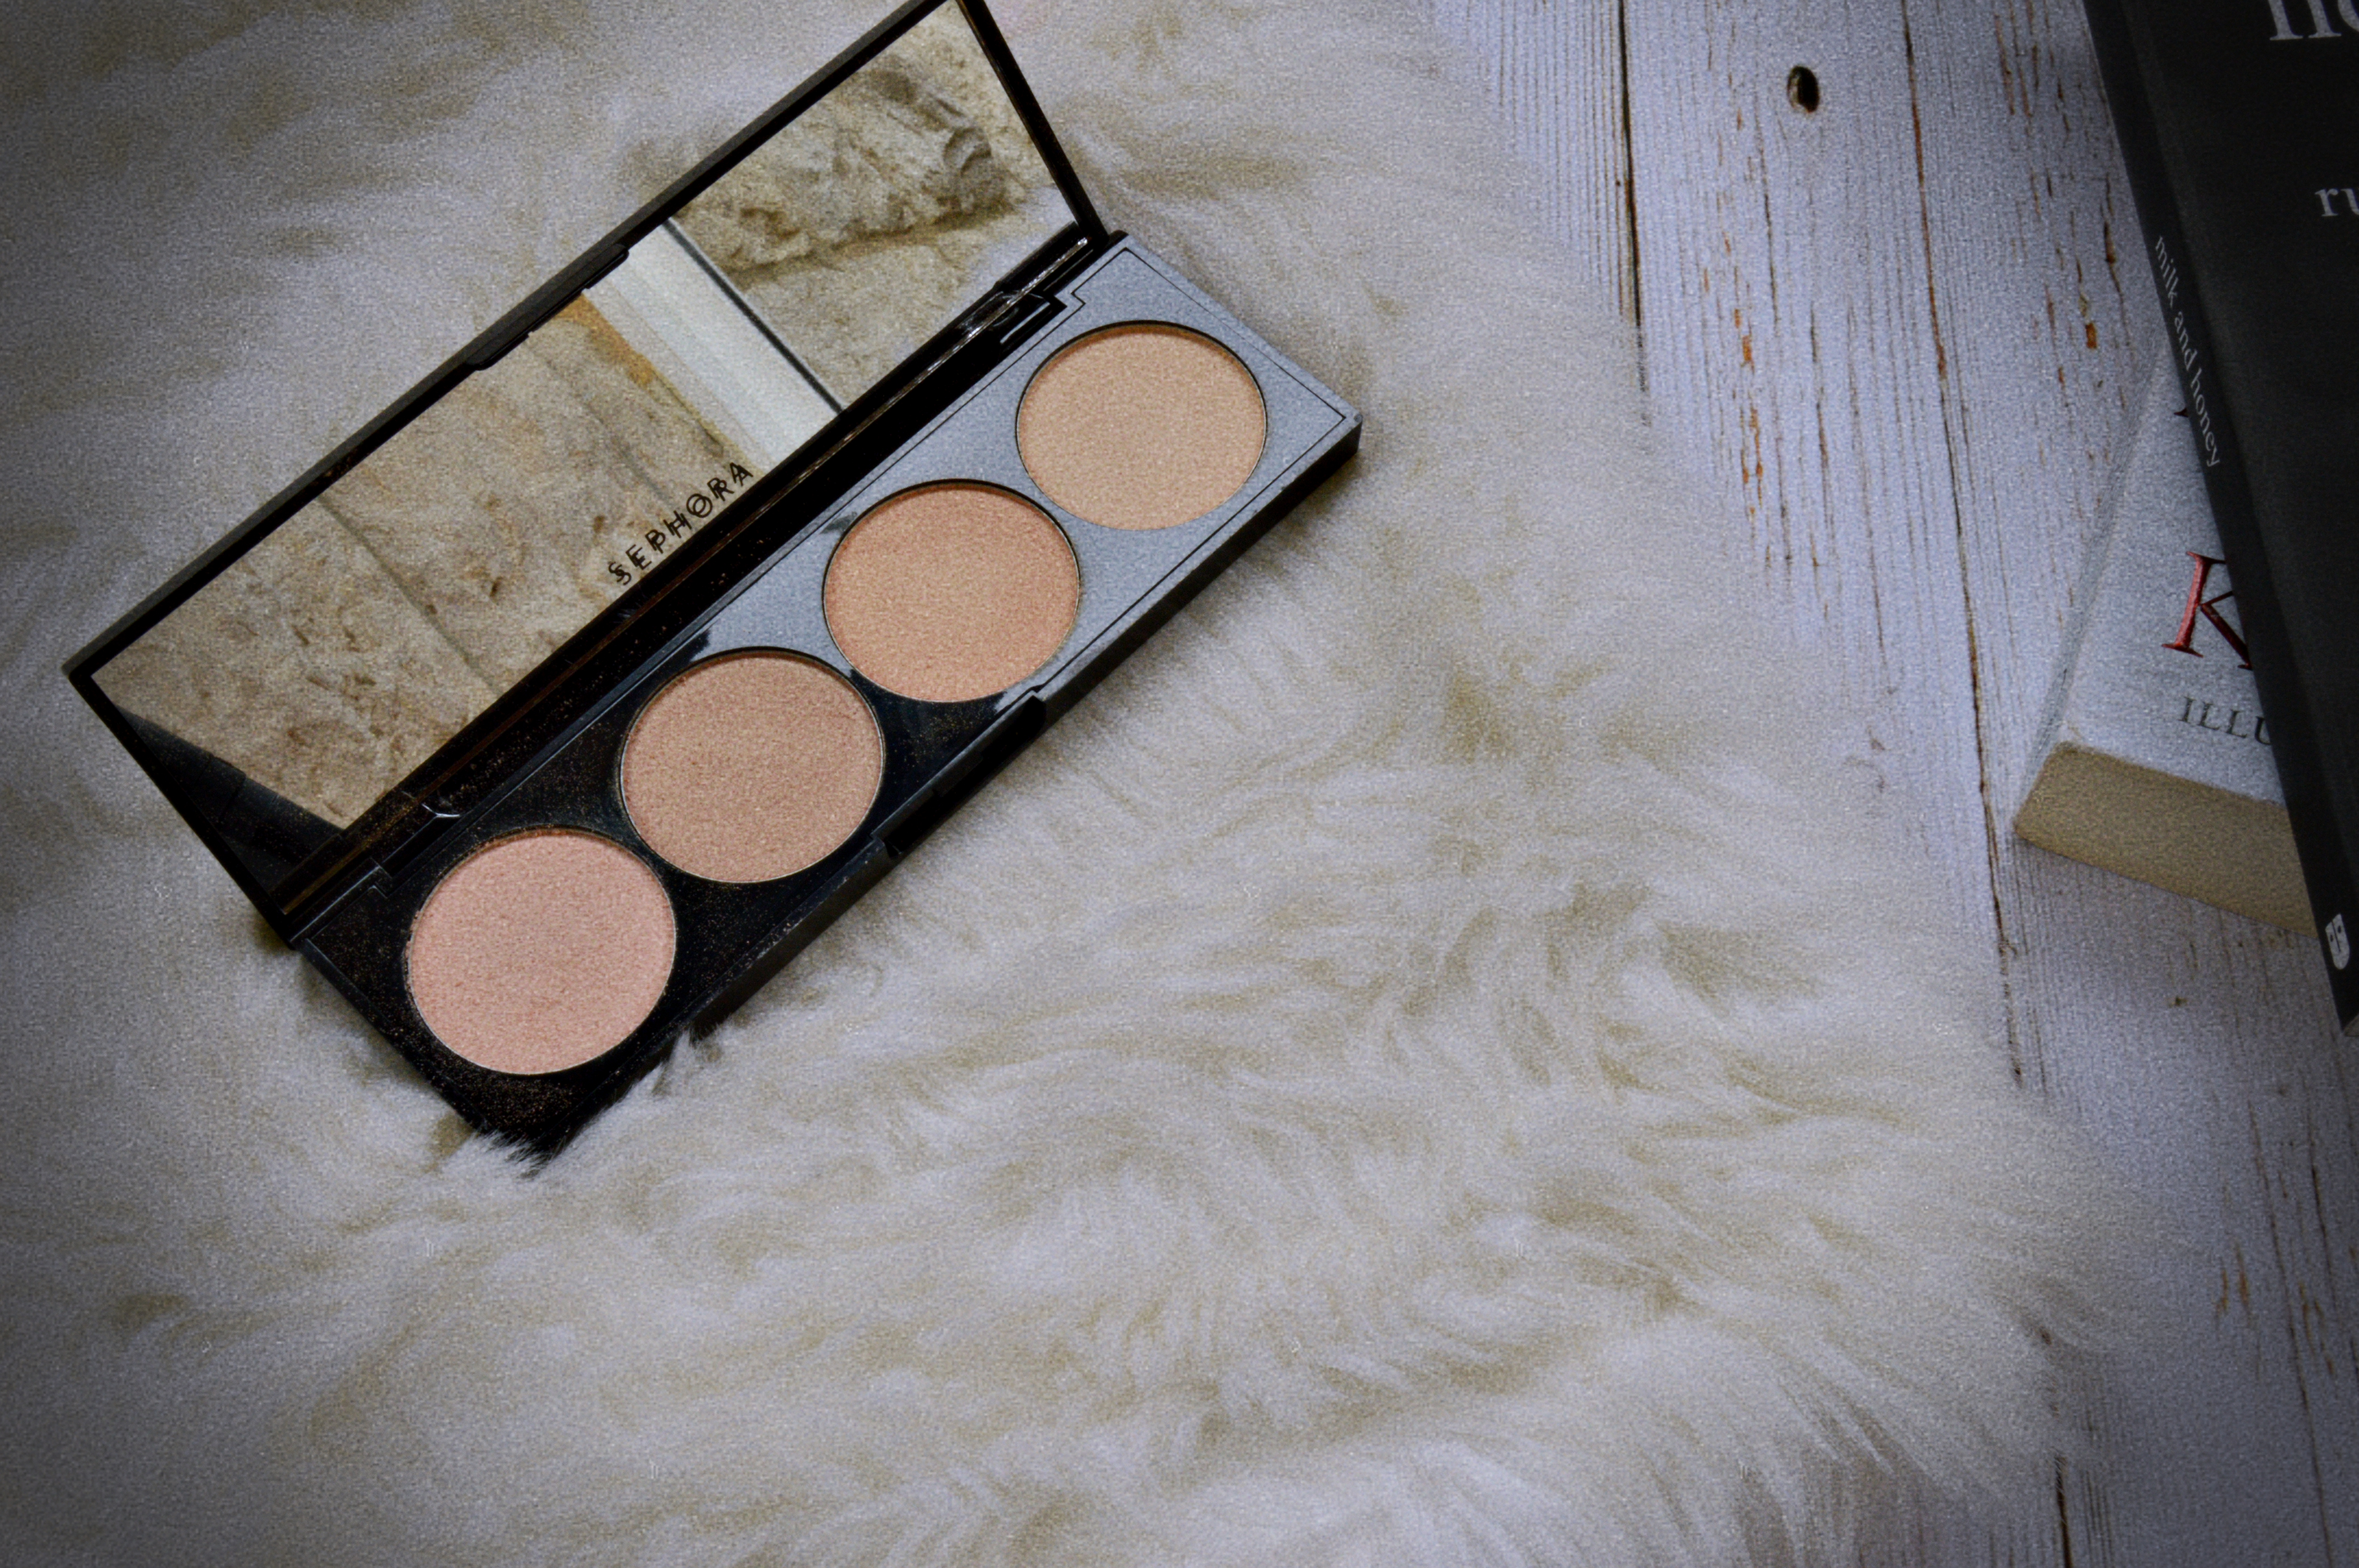 a11b4dacbb5 So each palette comes with four shades  the blush palette comes with four  shimmery blush shades and one contour shade. The strobing palette comes  with four ...